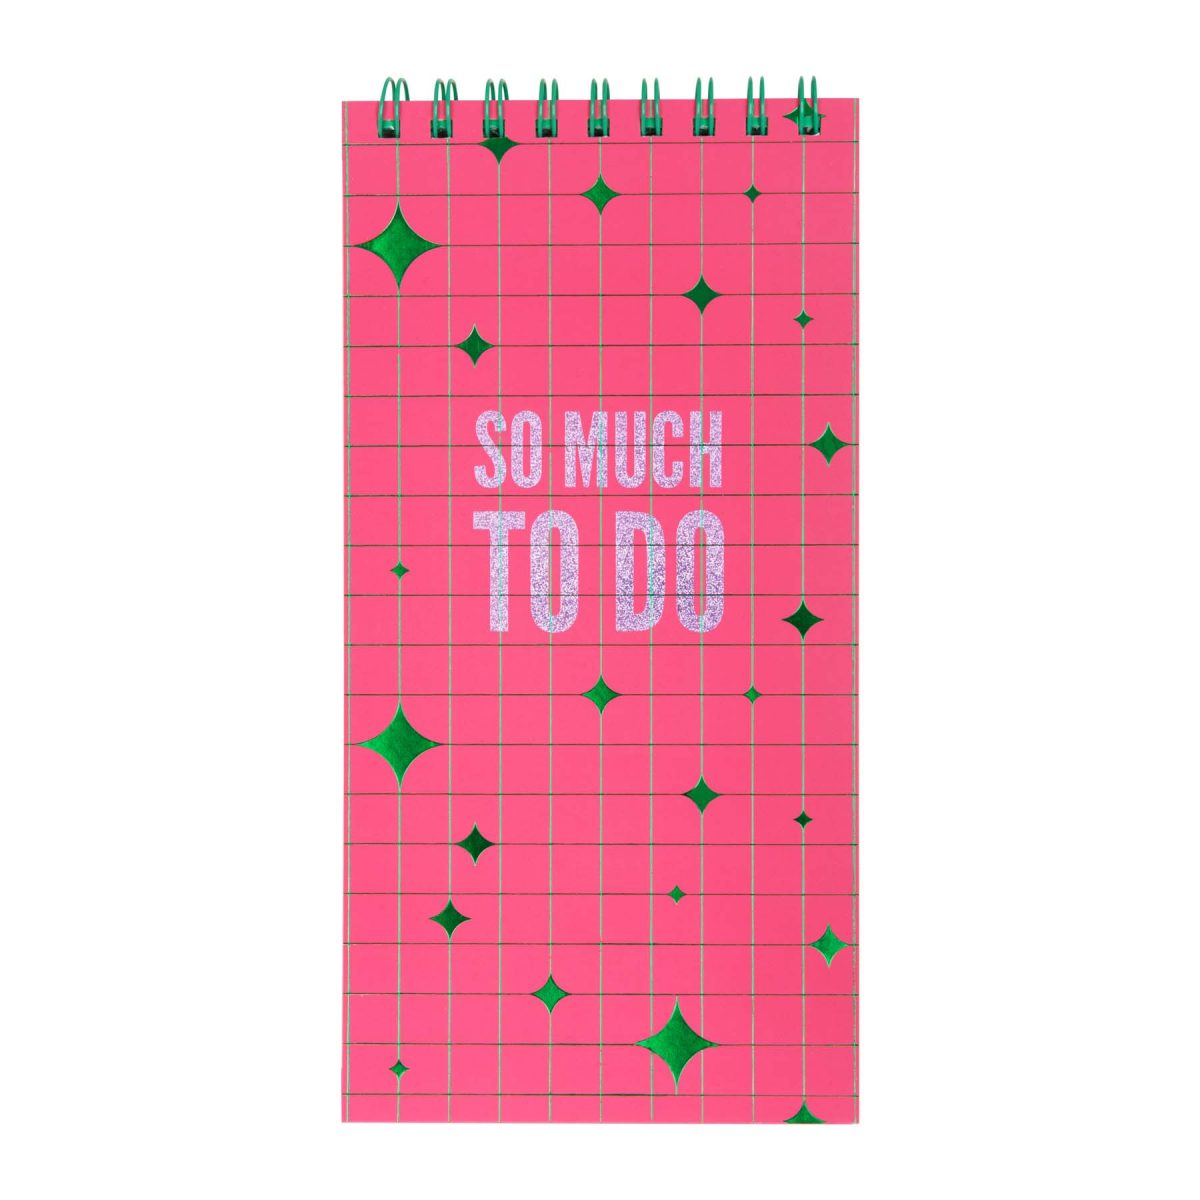 Things to do list by &anne - Stationery